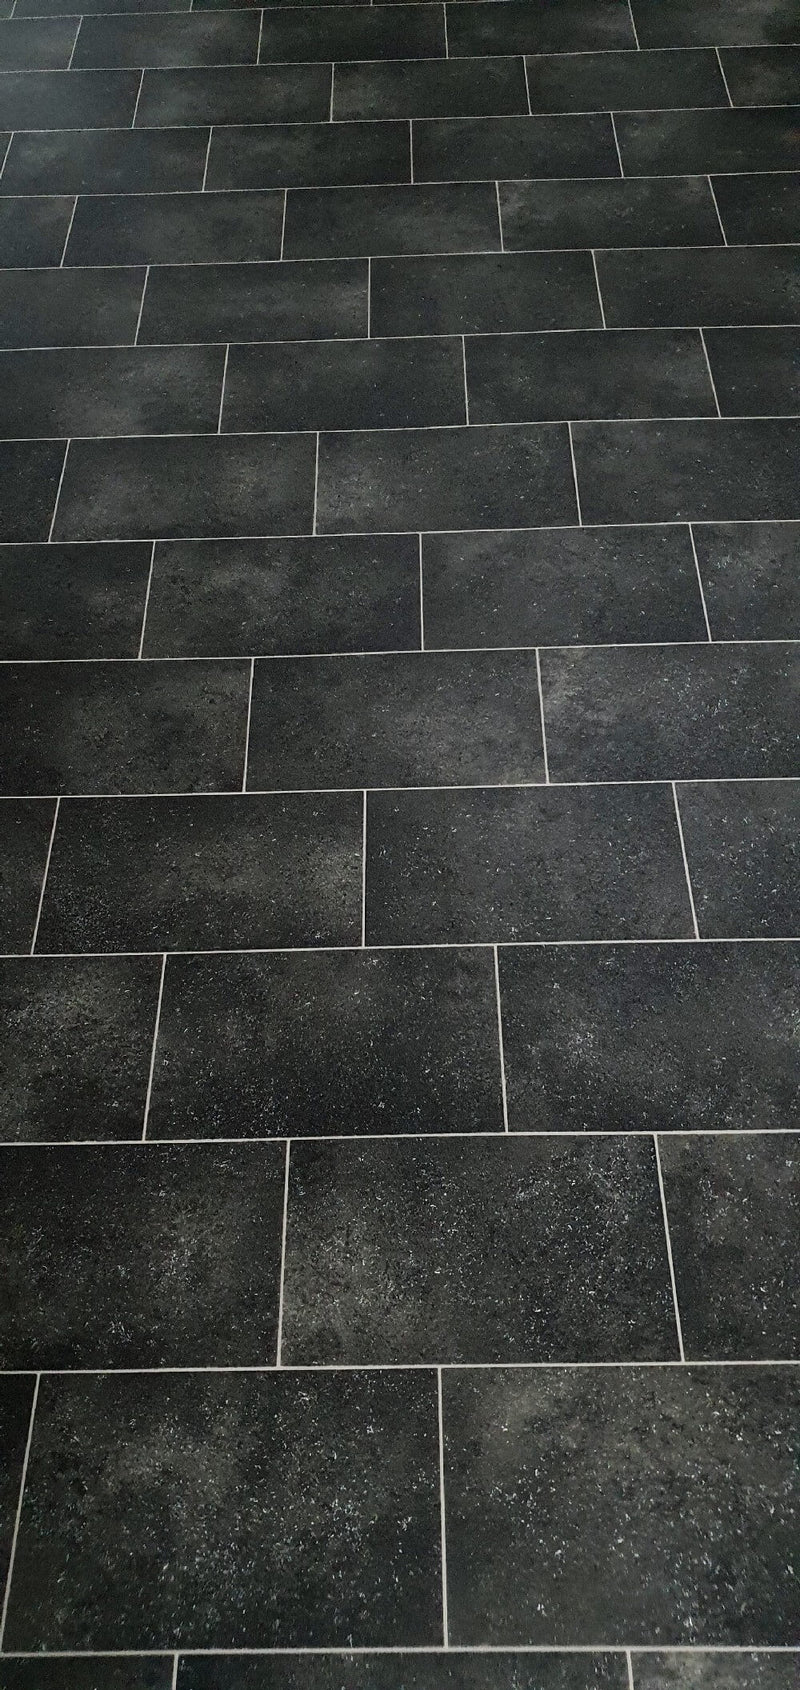 Galerie 599 Eco Vinyl Lino Flooring 4m Width Square Metre Price is £7.95 - Decoridea.co.uk